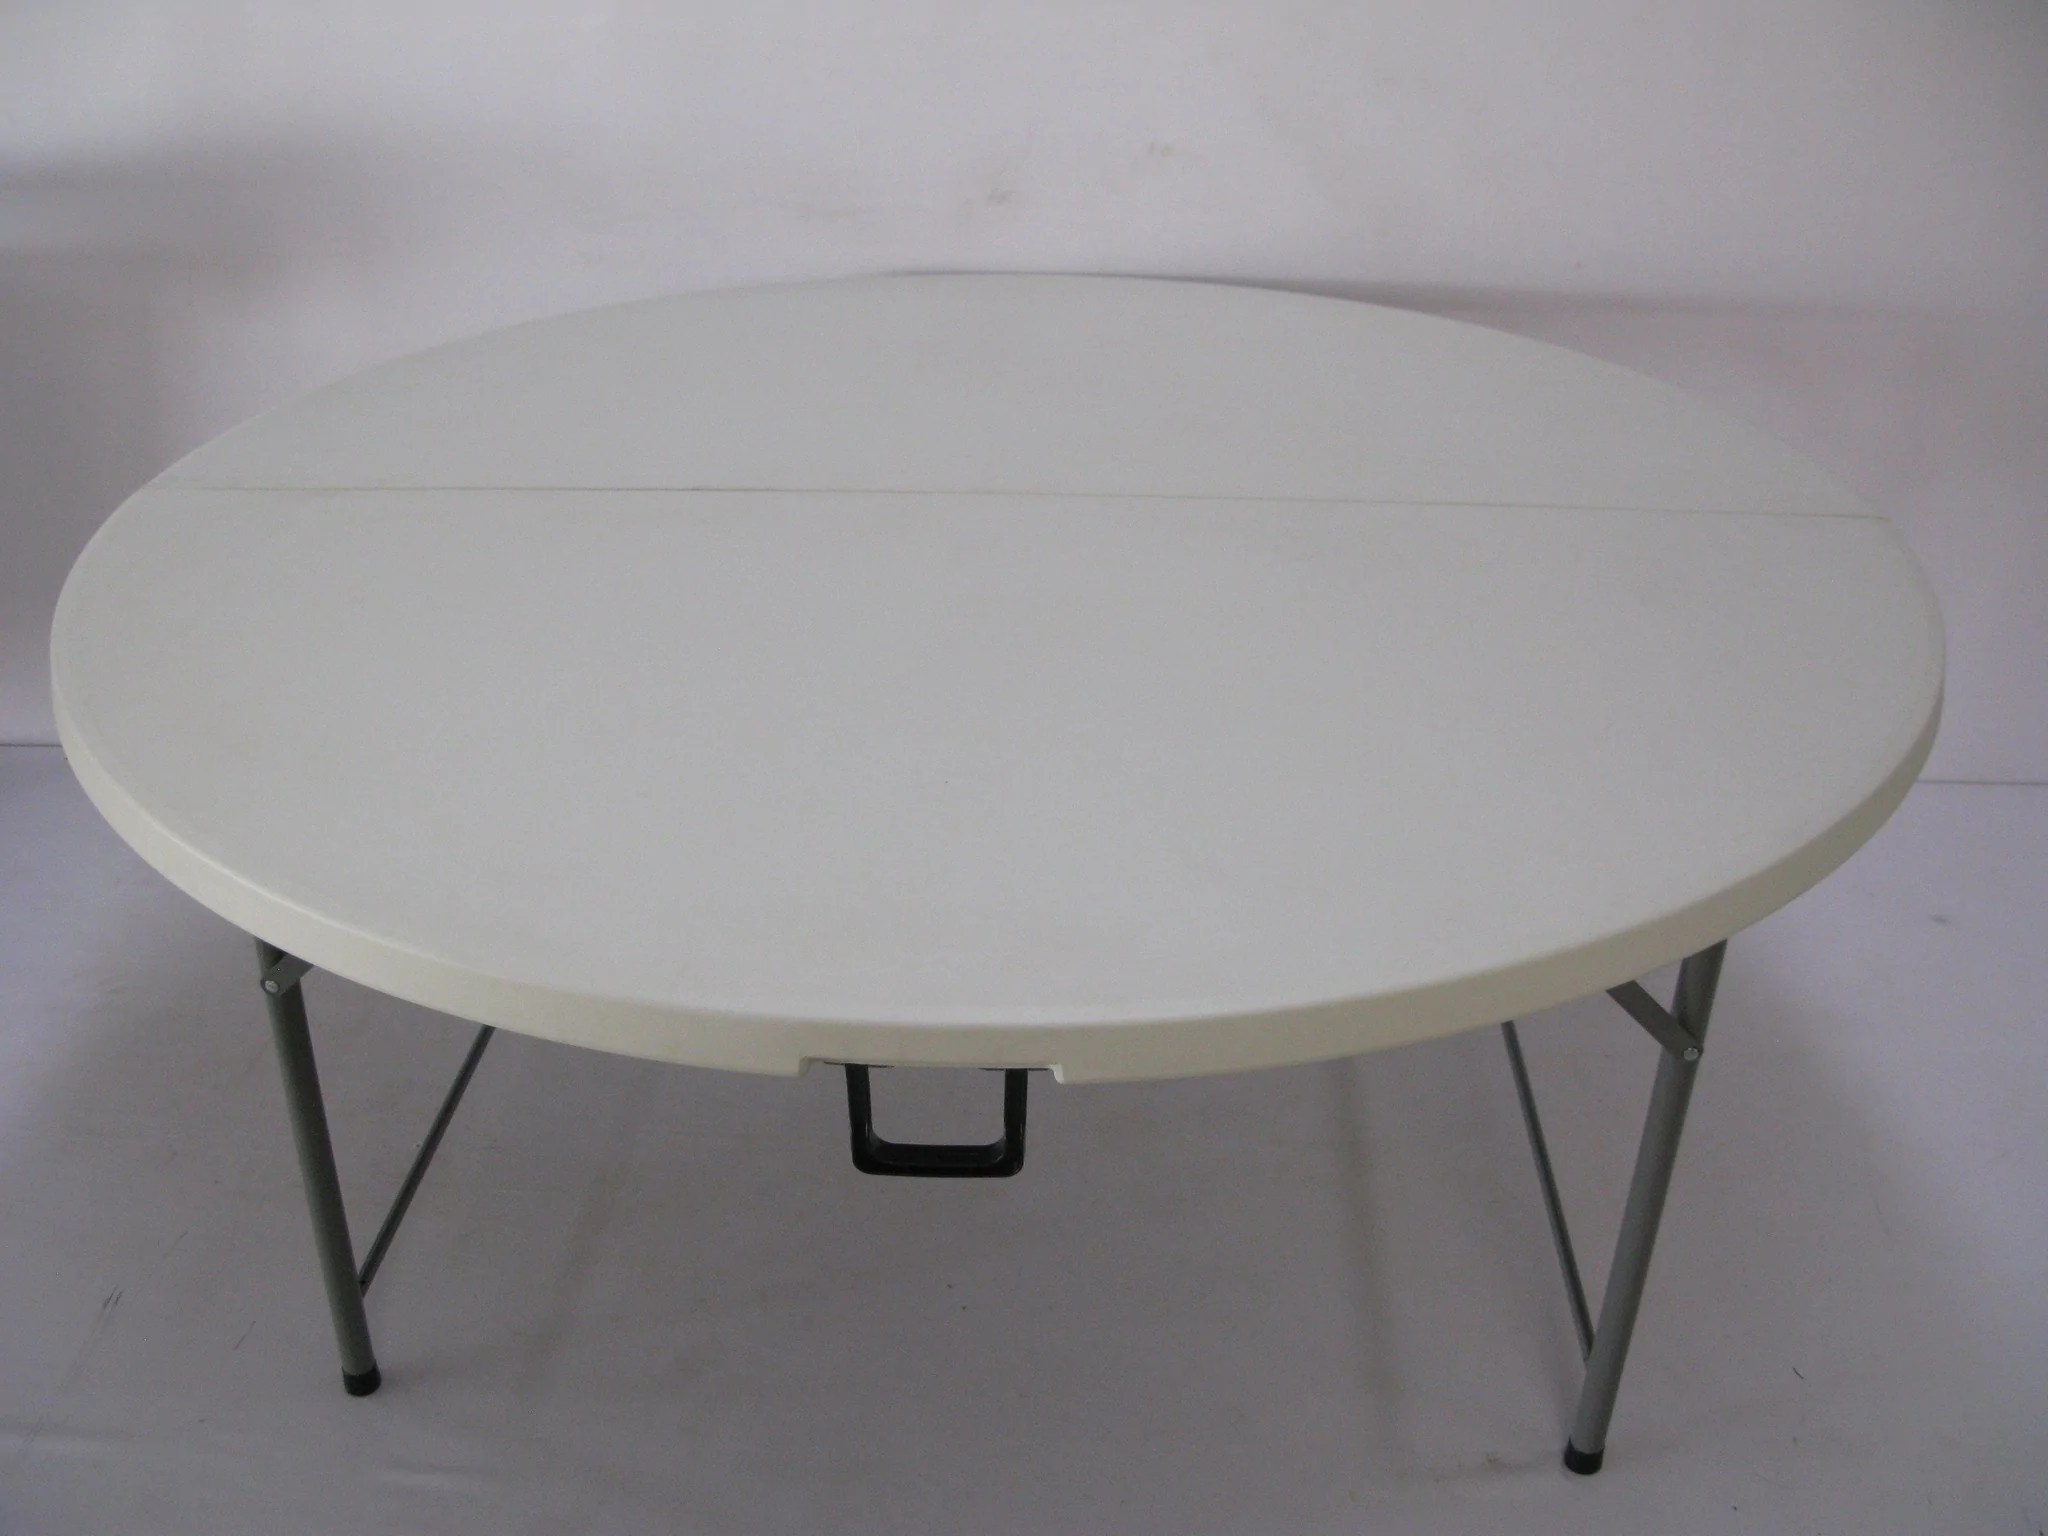 Round Plastic Tables Rou004 Fold In Half Round Plastic Tables 1500mm Seats 8 10 People